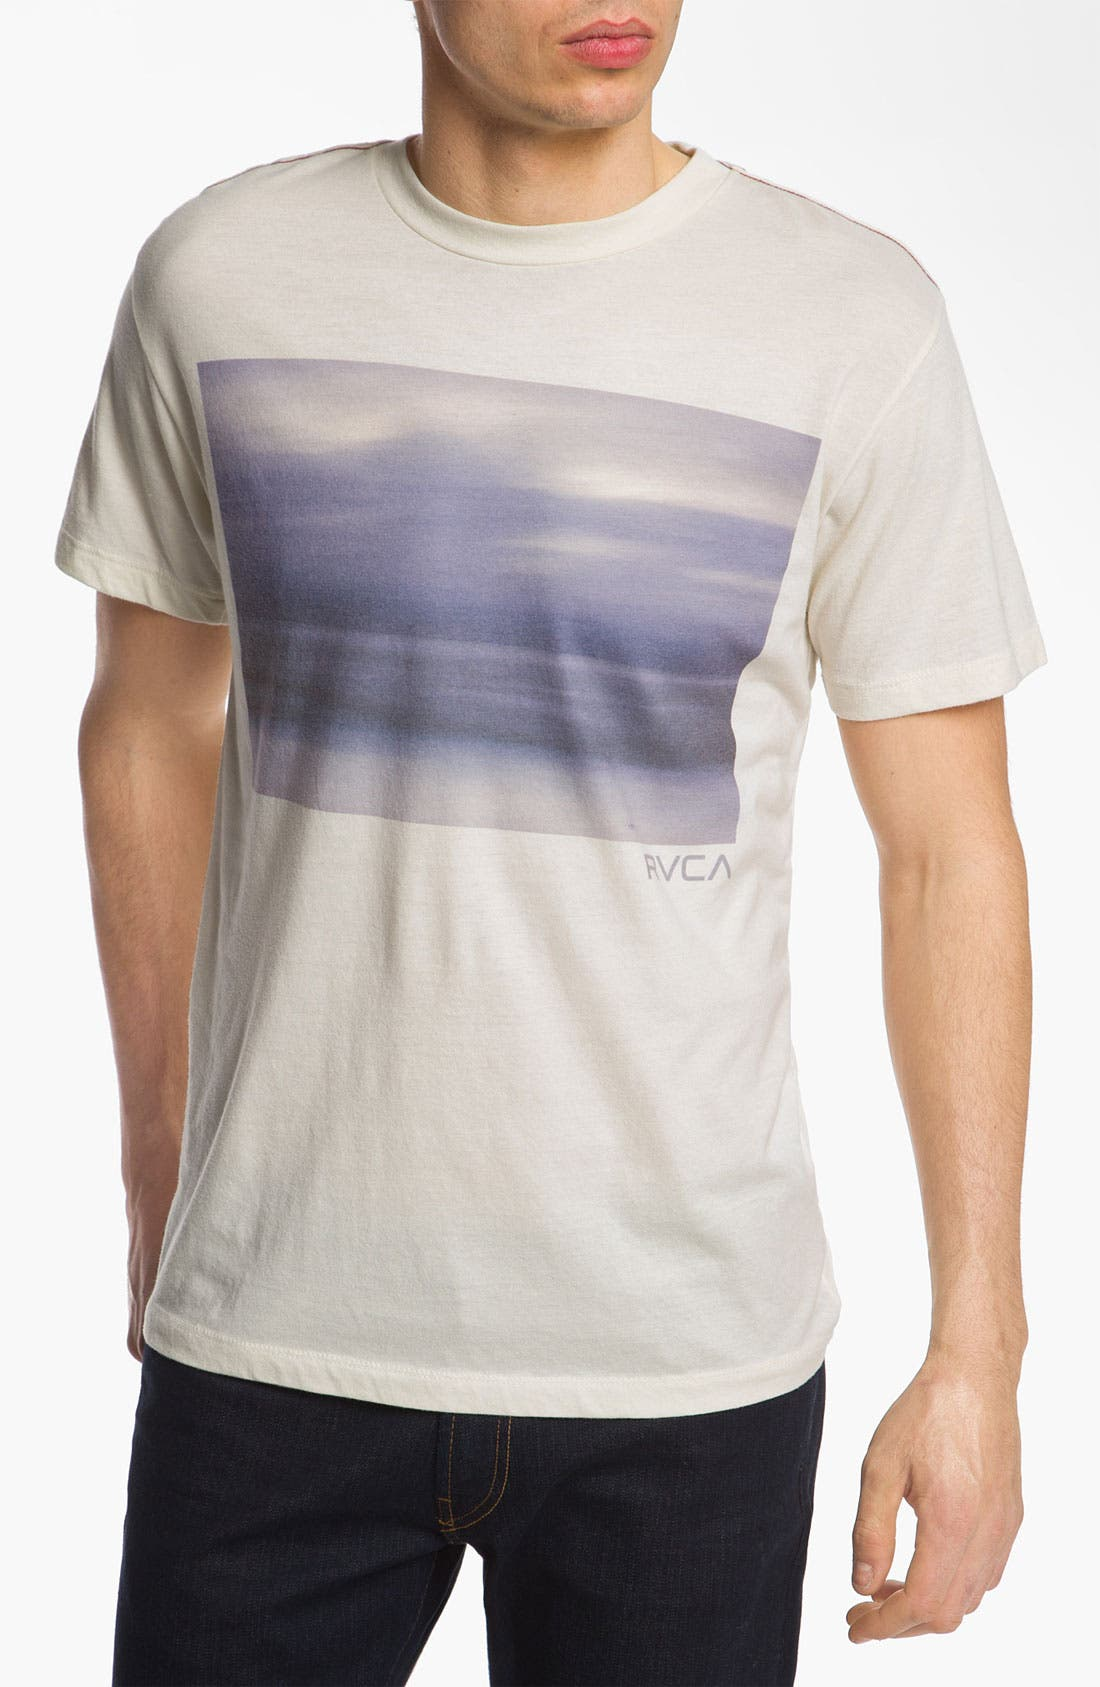 Alternate Image 1 Selected - RVCA 'Night for Day' Vintage Wash T-Shirt